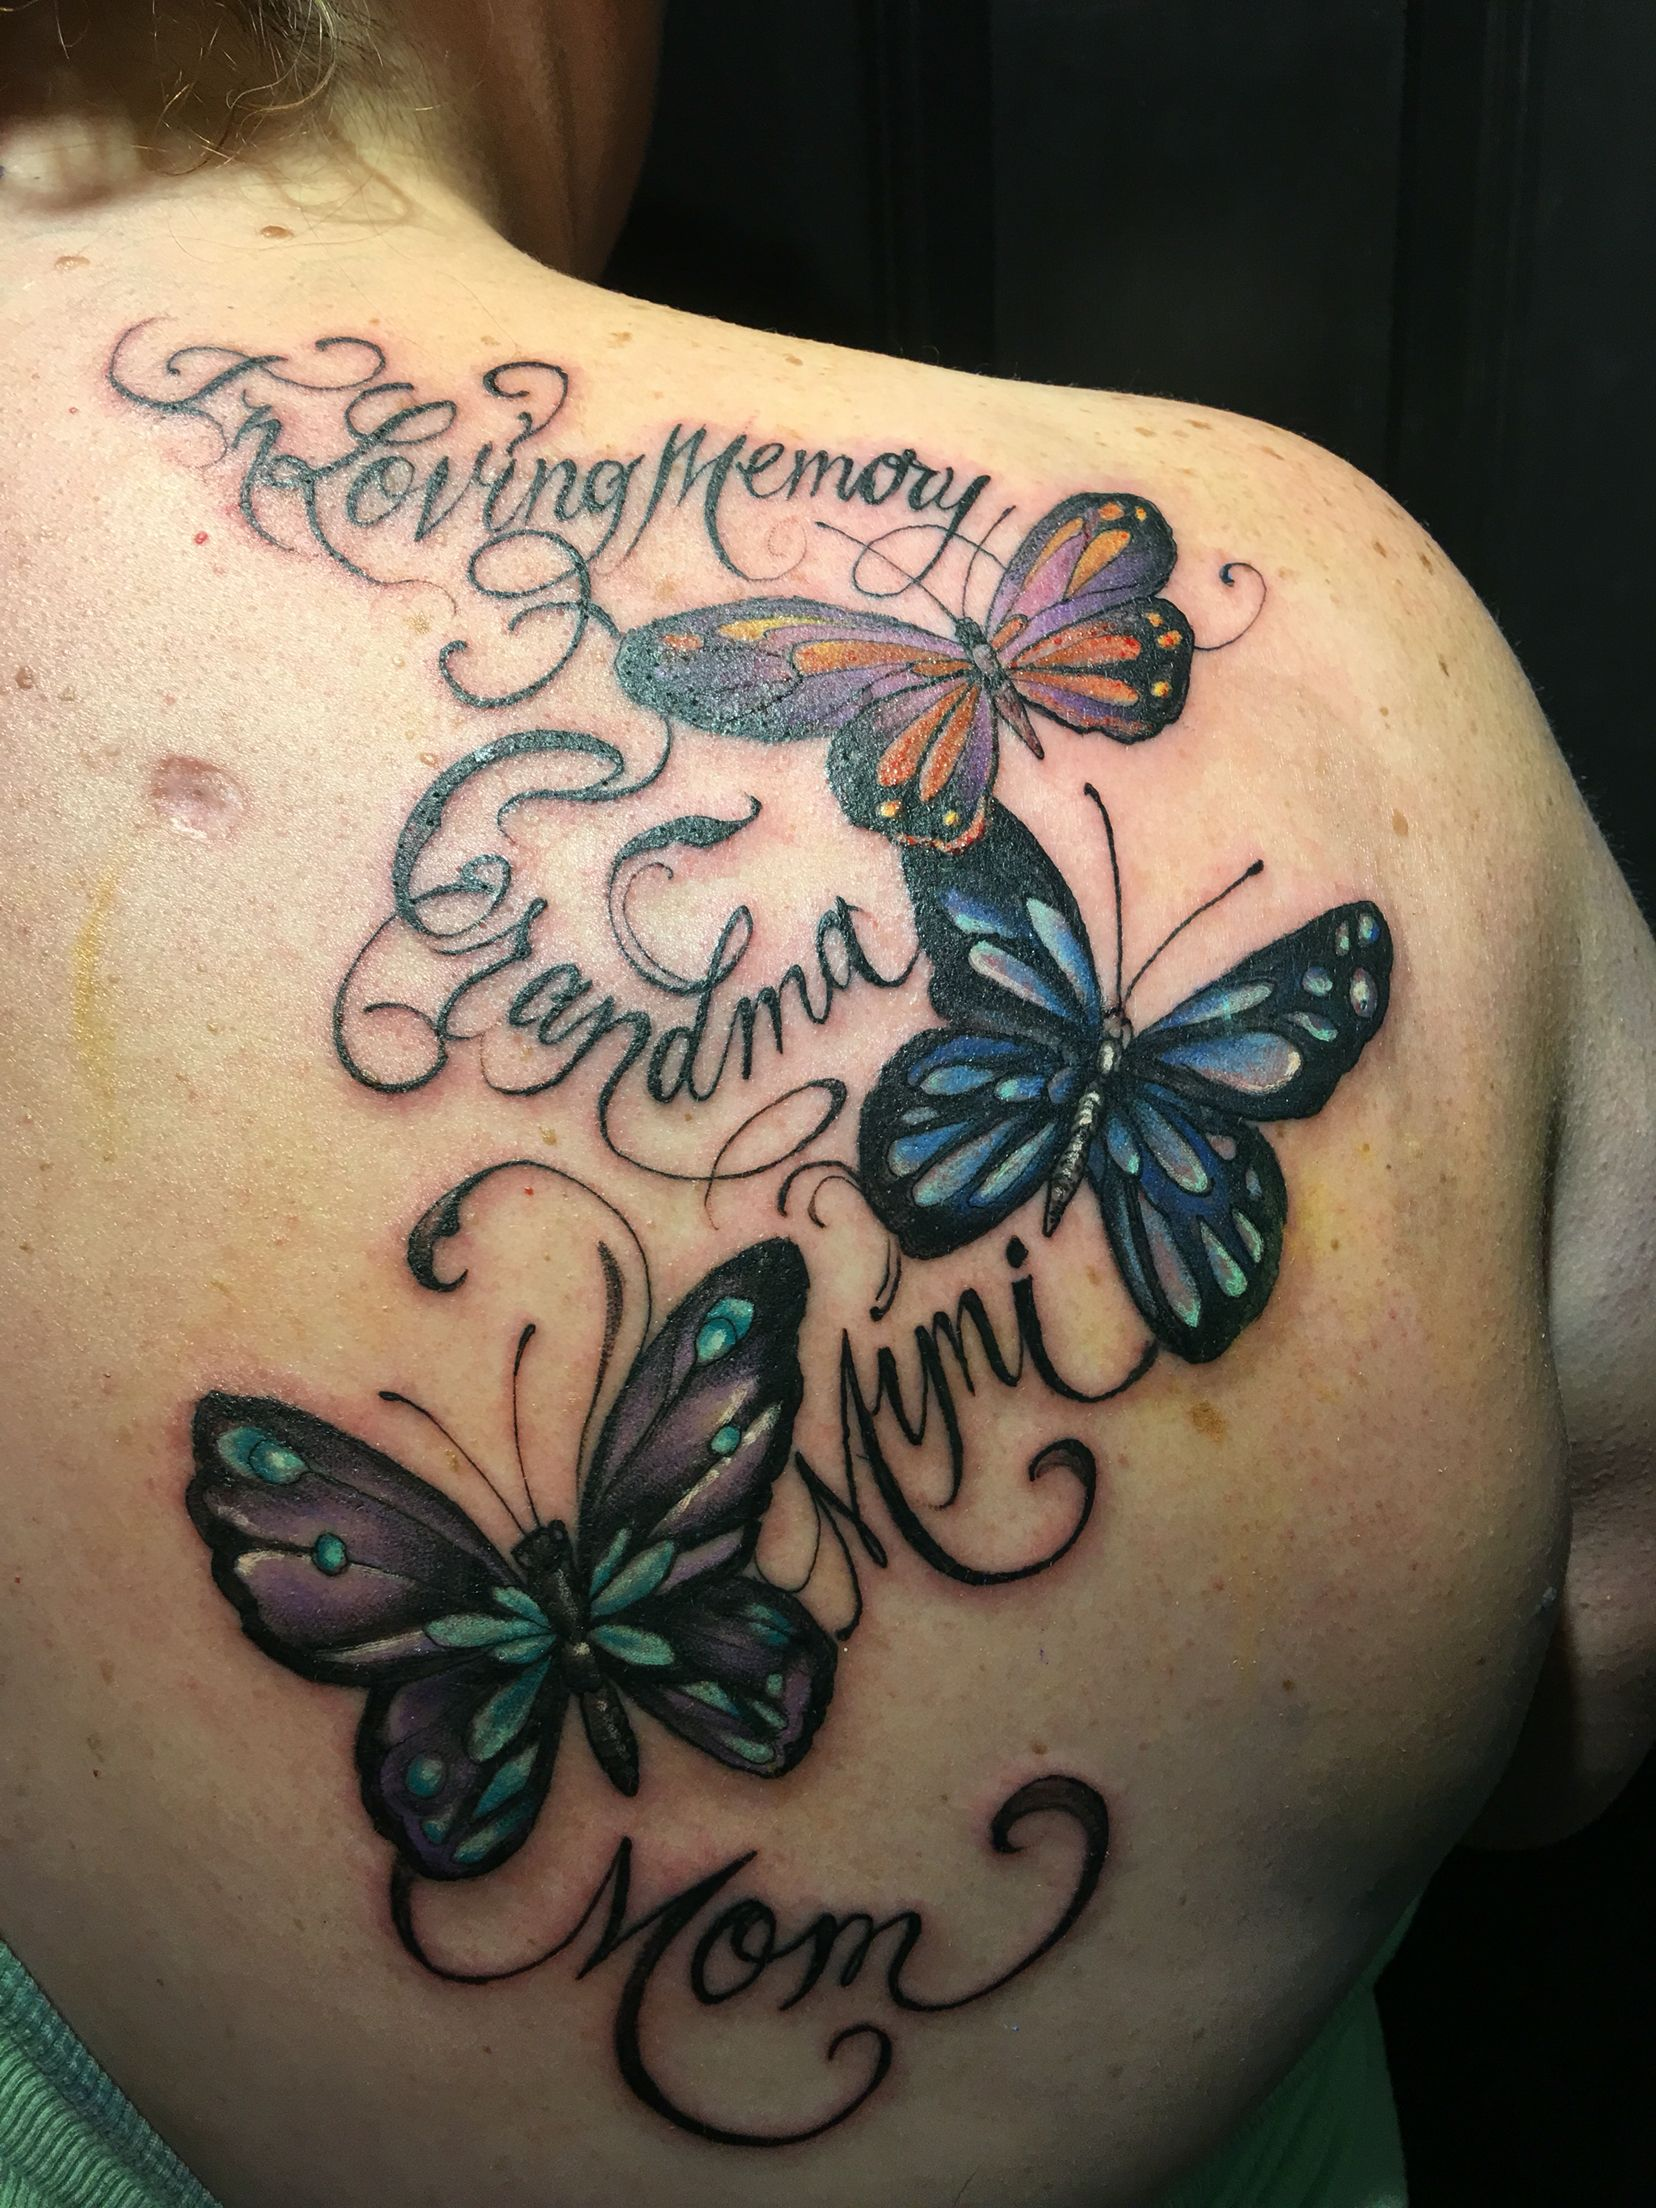 643db6fc3 Beautiful butterfly tattoo in memory | Tattoos | Tattoos, Clover ...